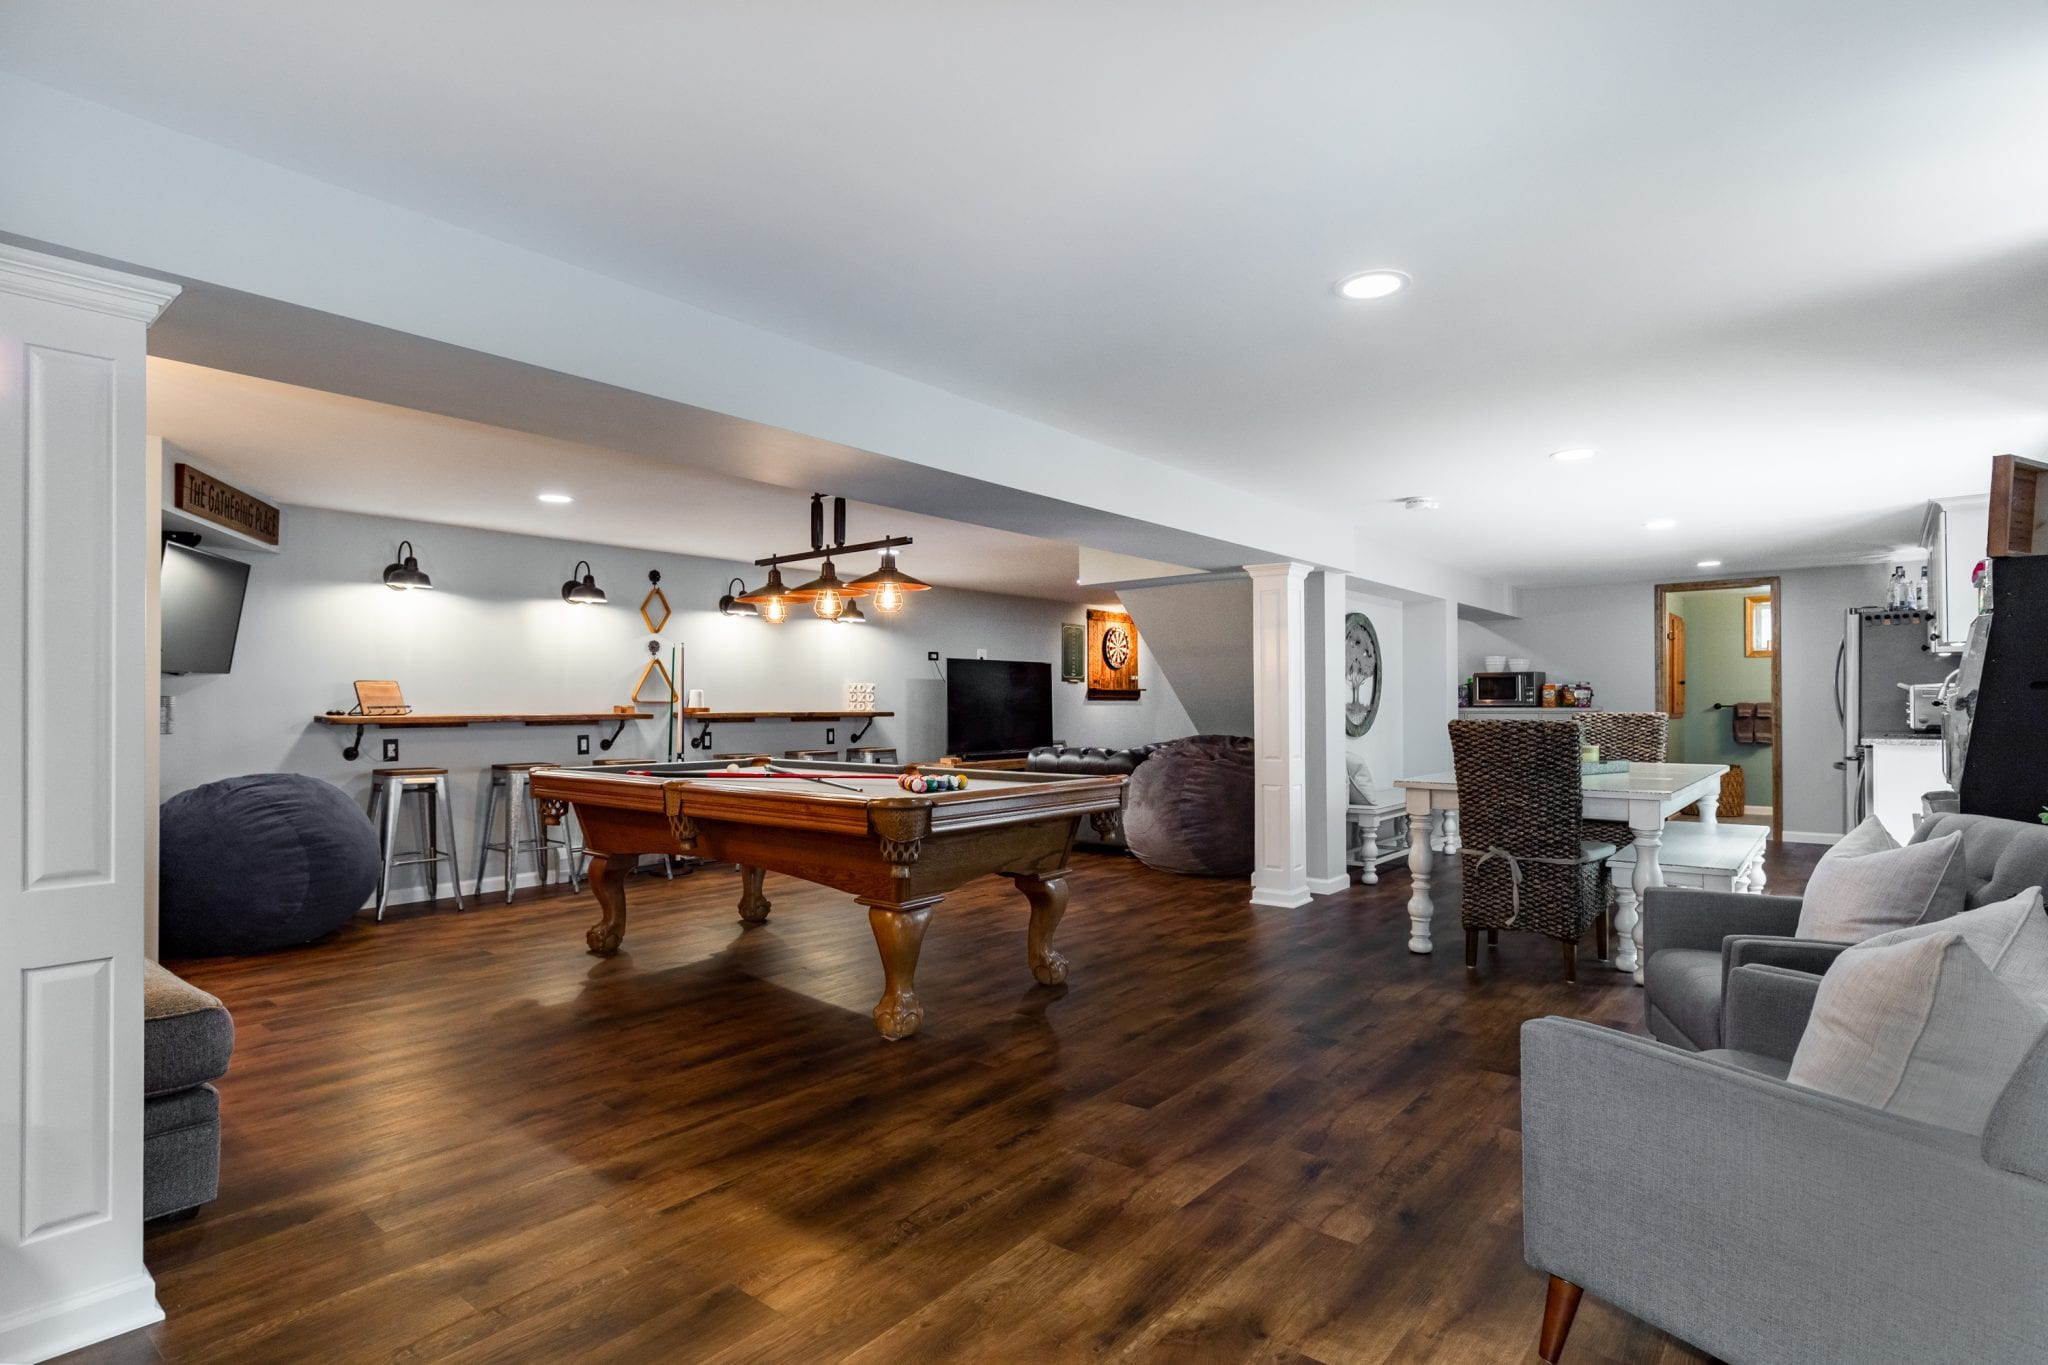 Renovated basement detach with kitchen and bathroom